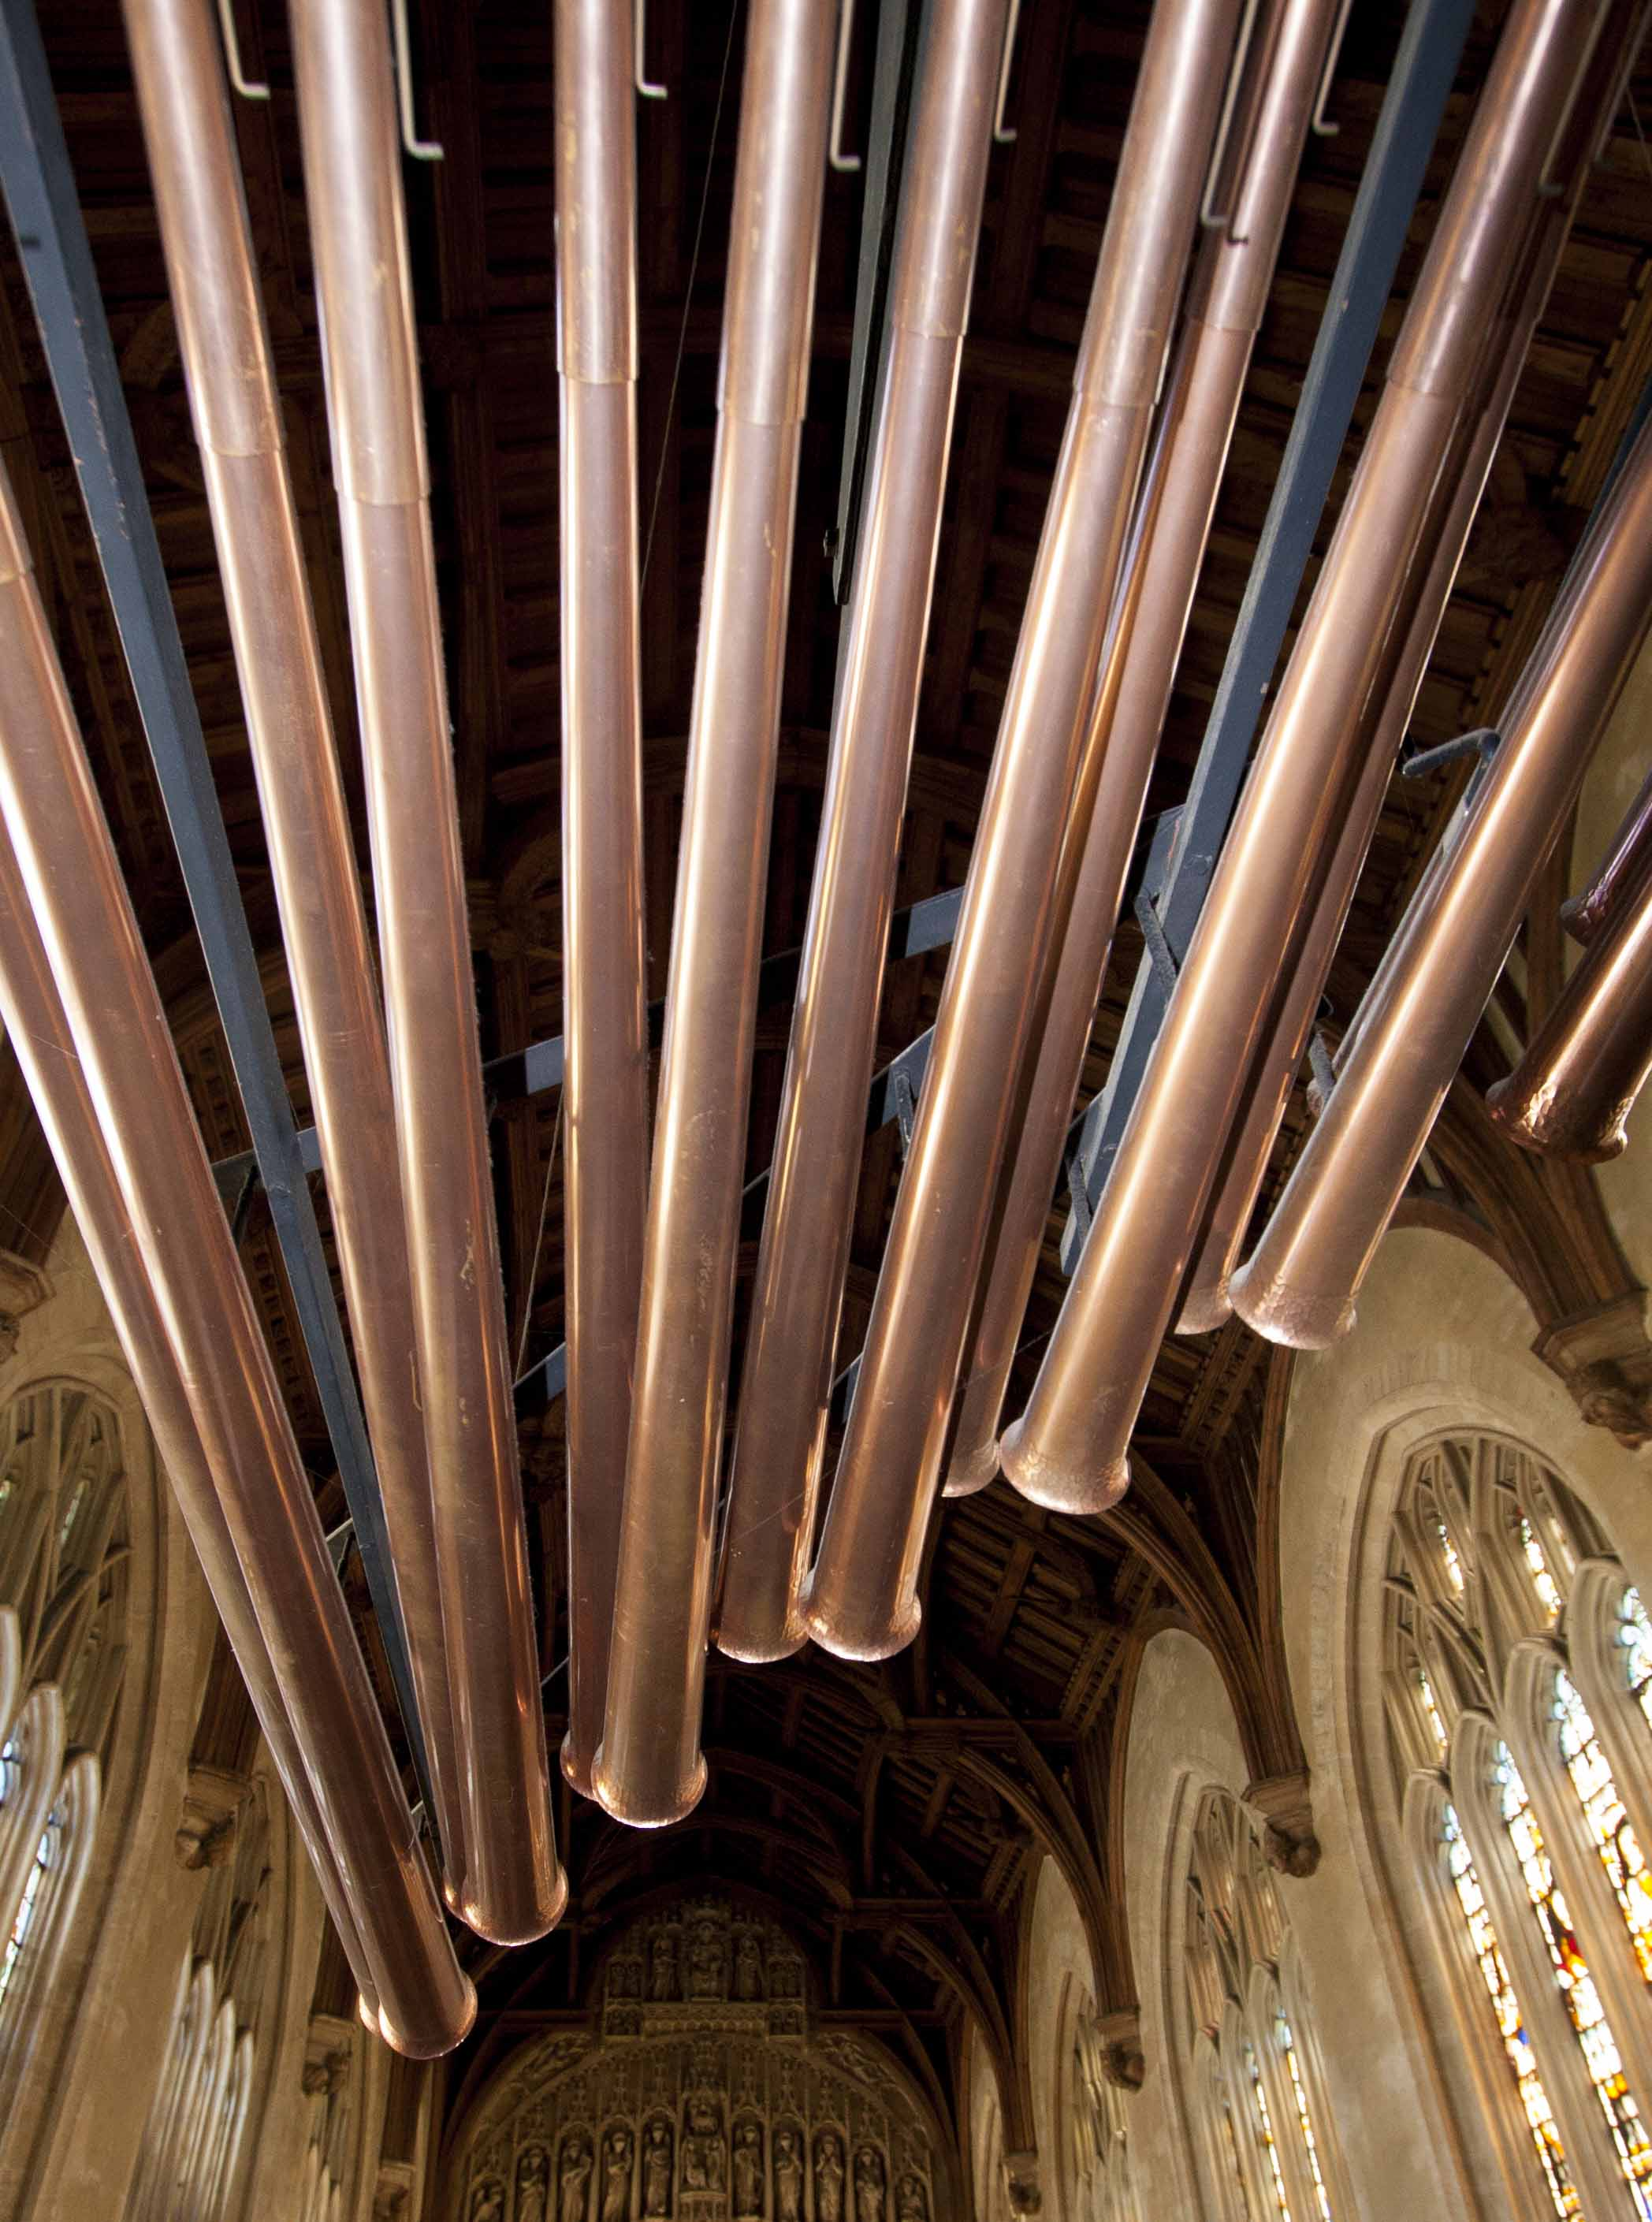 the pipes of the chapel organ